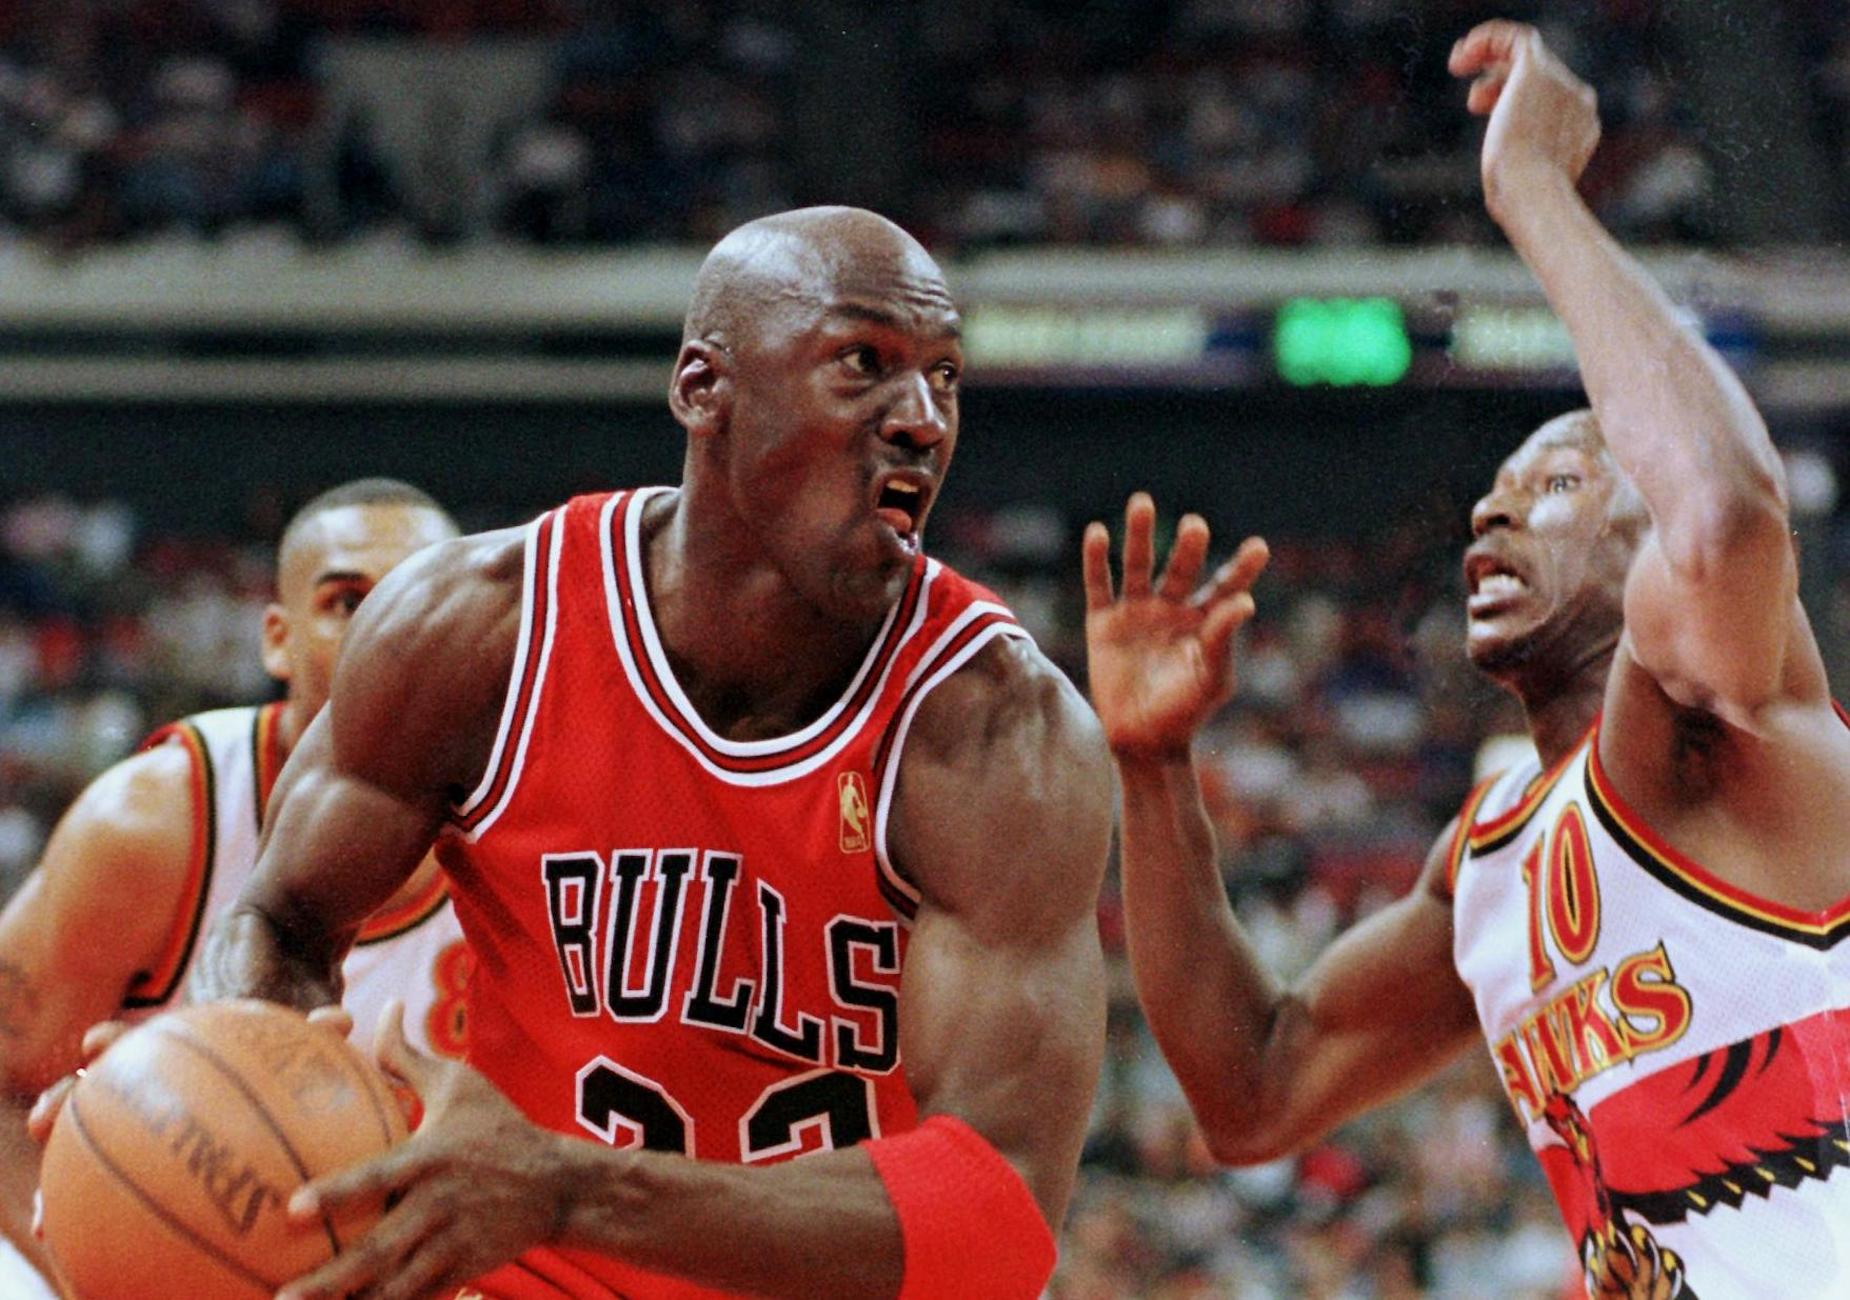 Michael Jordan and Mookie Blaylock during a 1997 NBA playoff game.